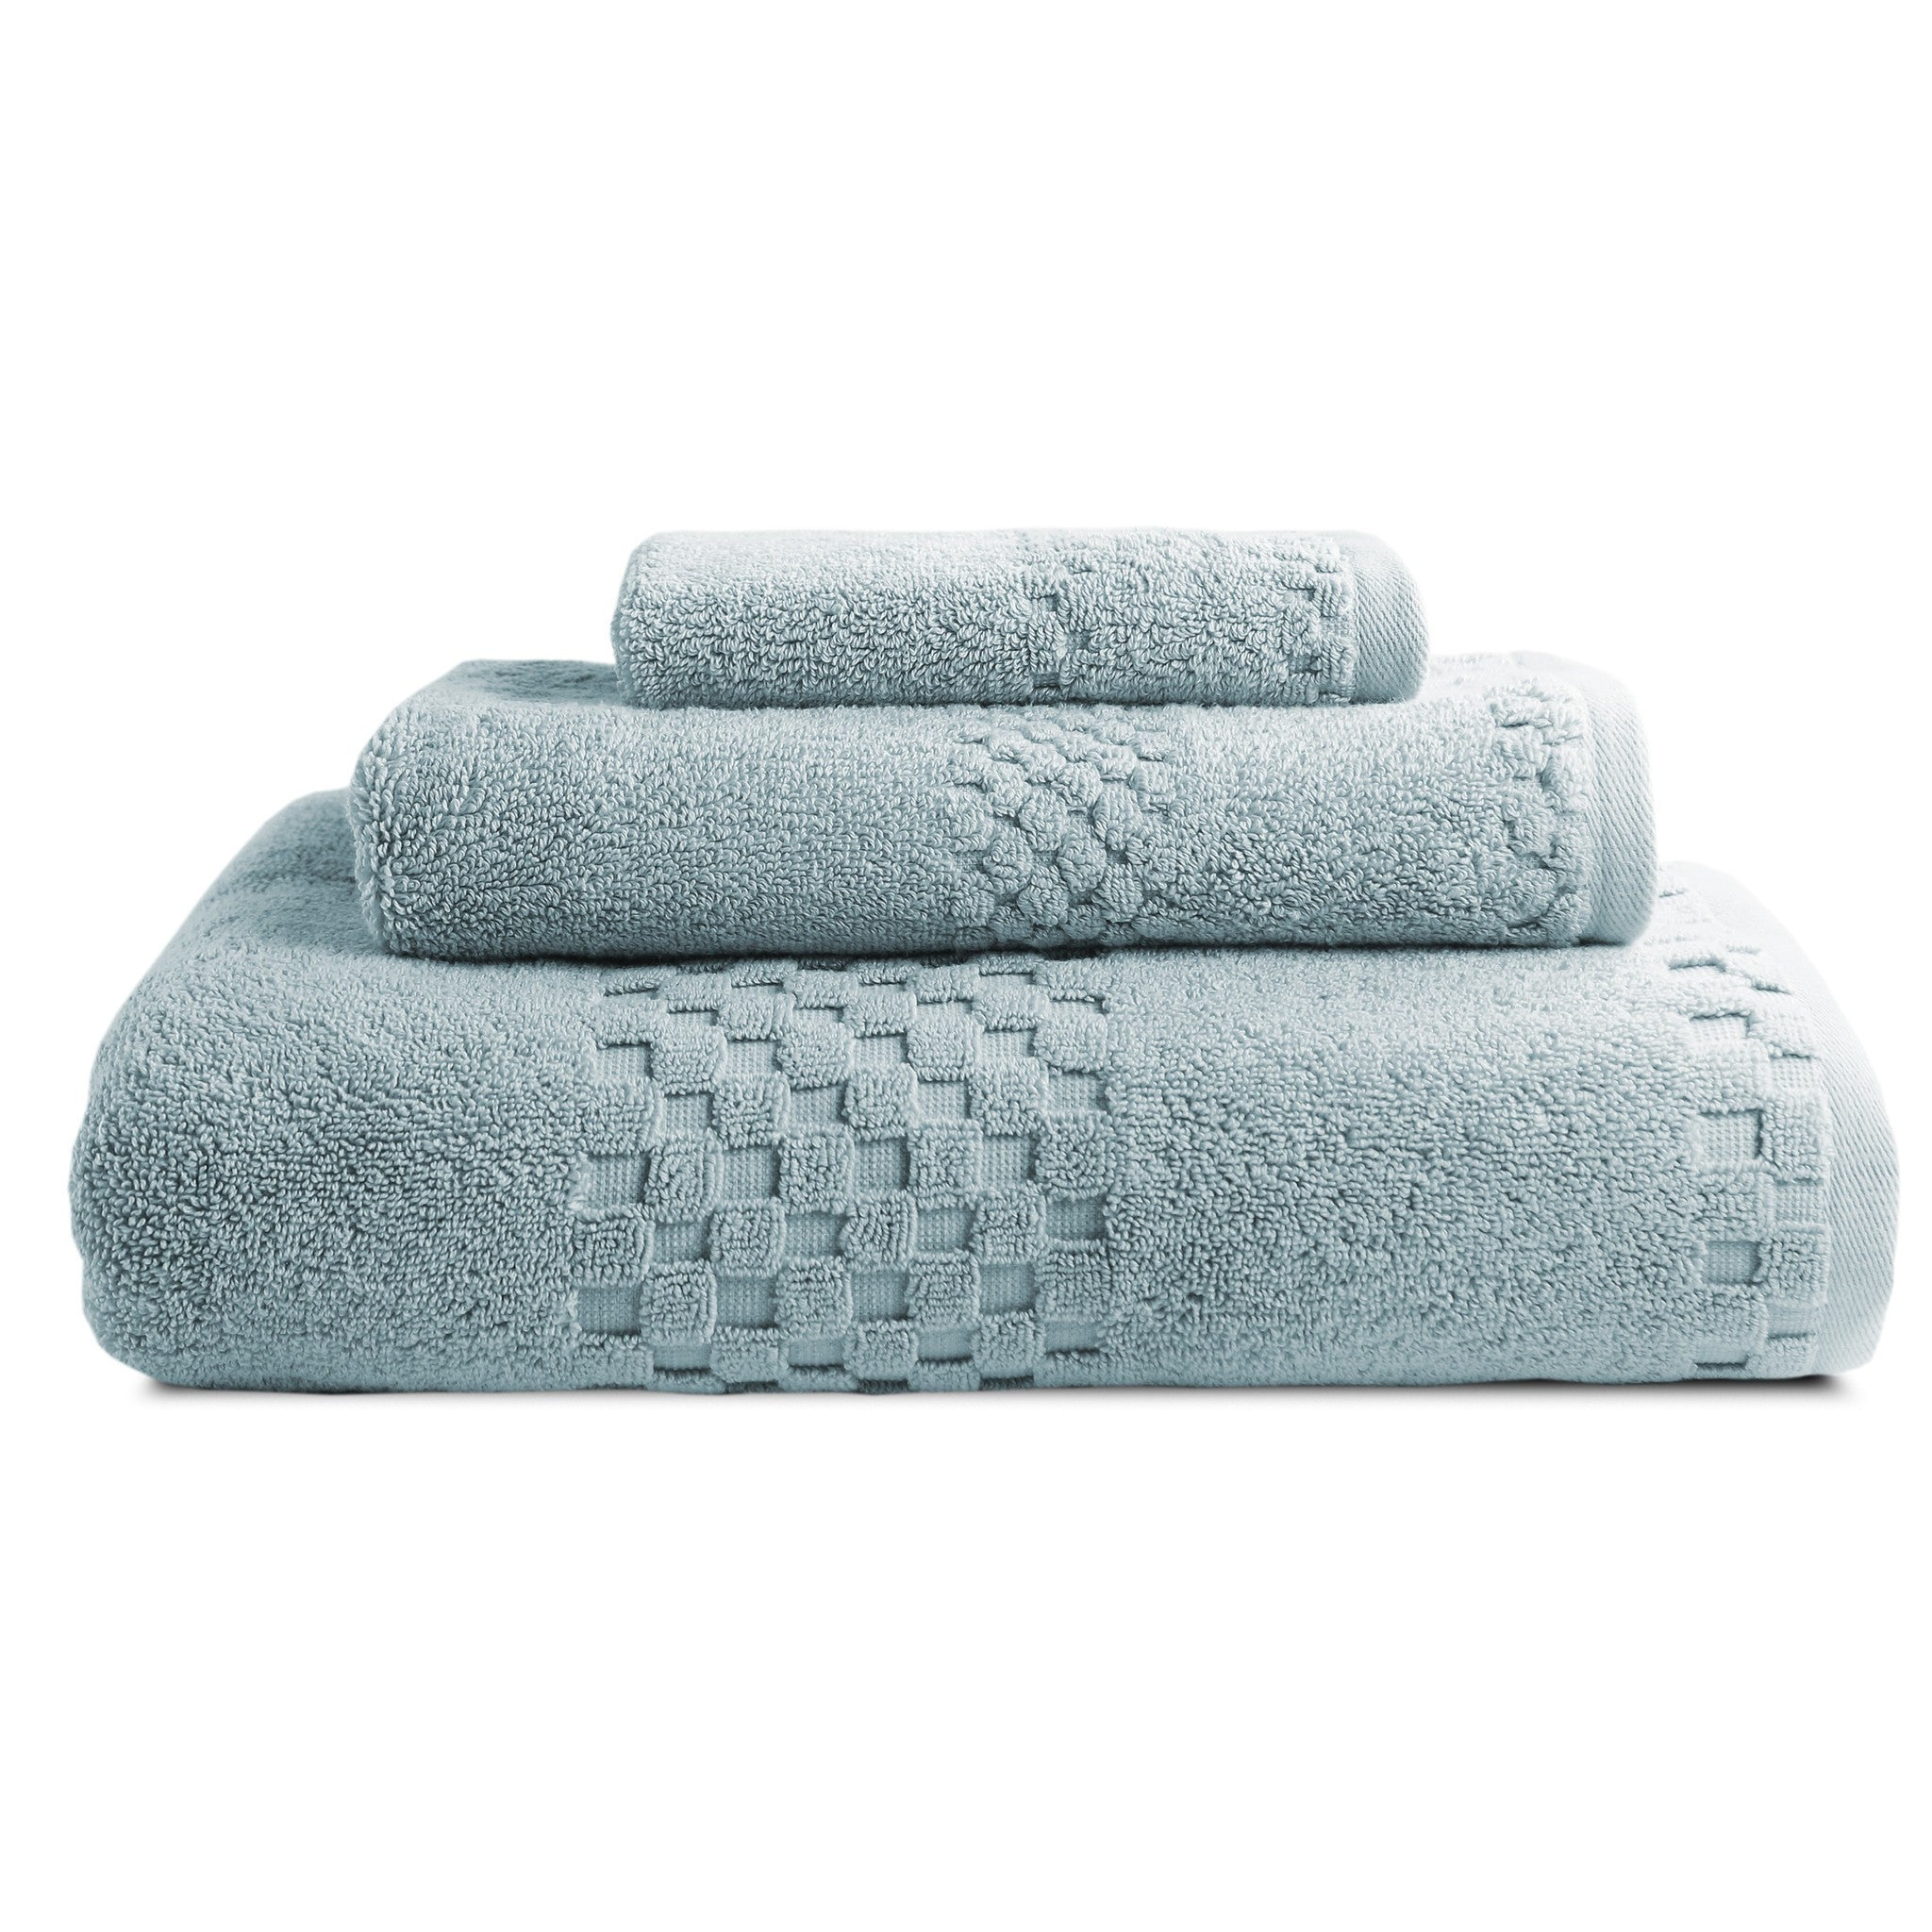 Home, Bathroom, Bath Towels - Beverly Hills Luxury Hotel Resort Bath Towels - Sets Of 3